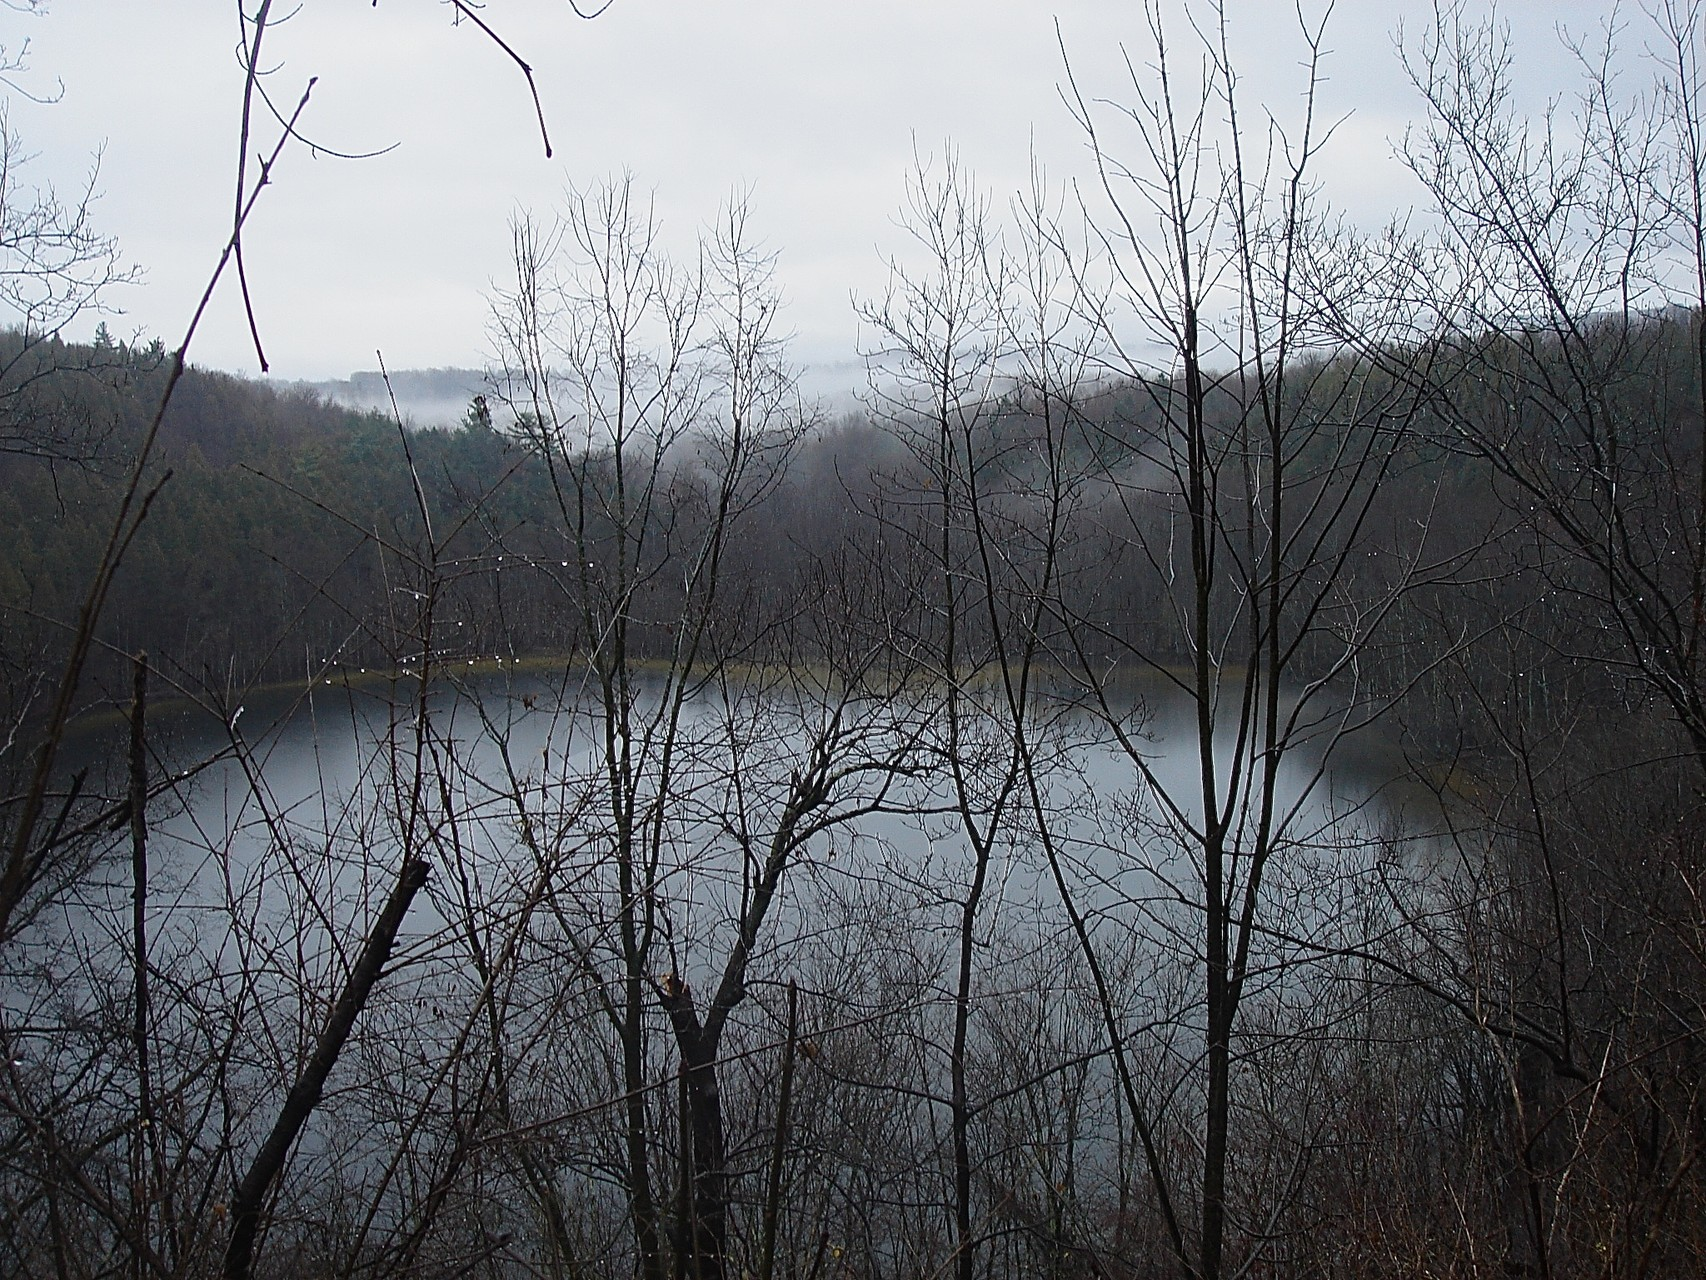 Clark Reservation, near Jamesville, Syracuse, NY 12-27-15